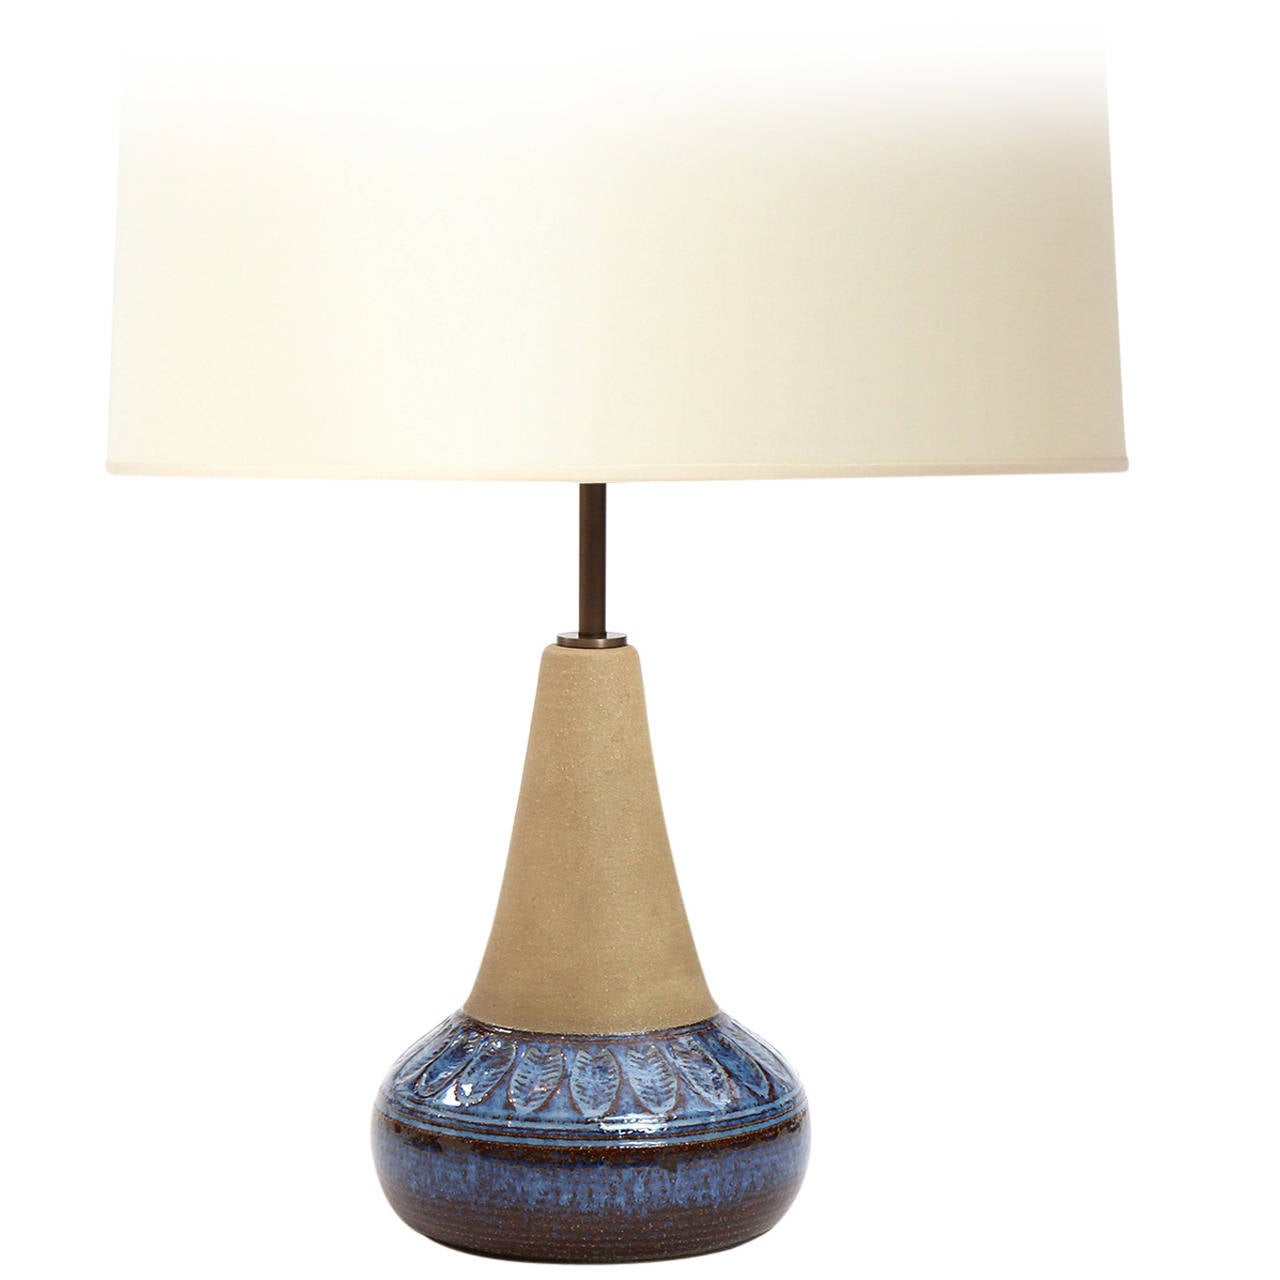 Ceramic Table Lamp By Soholm At 1stdibs